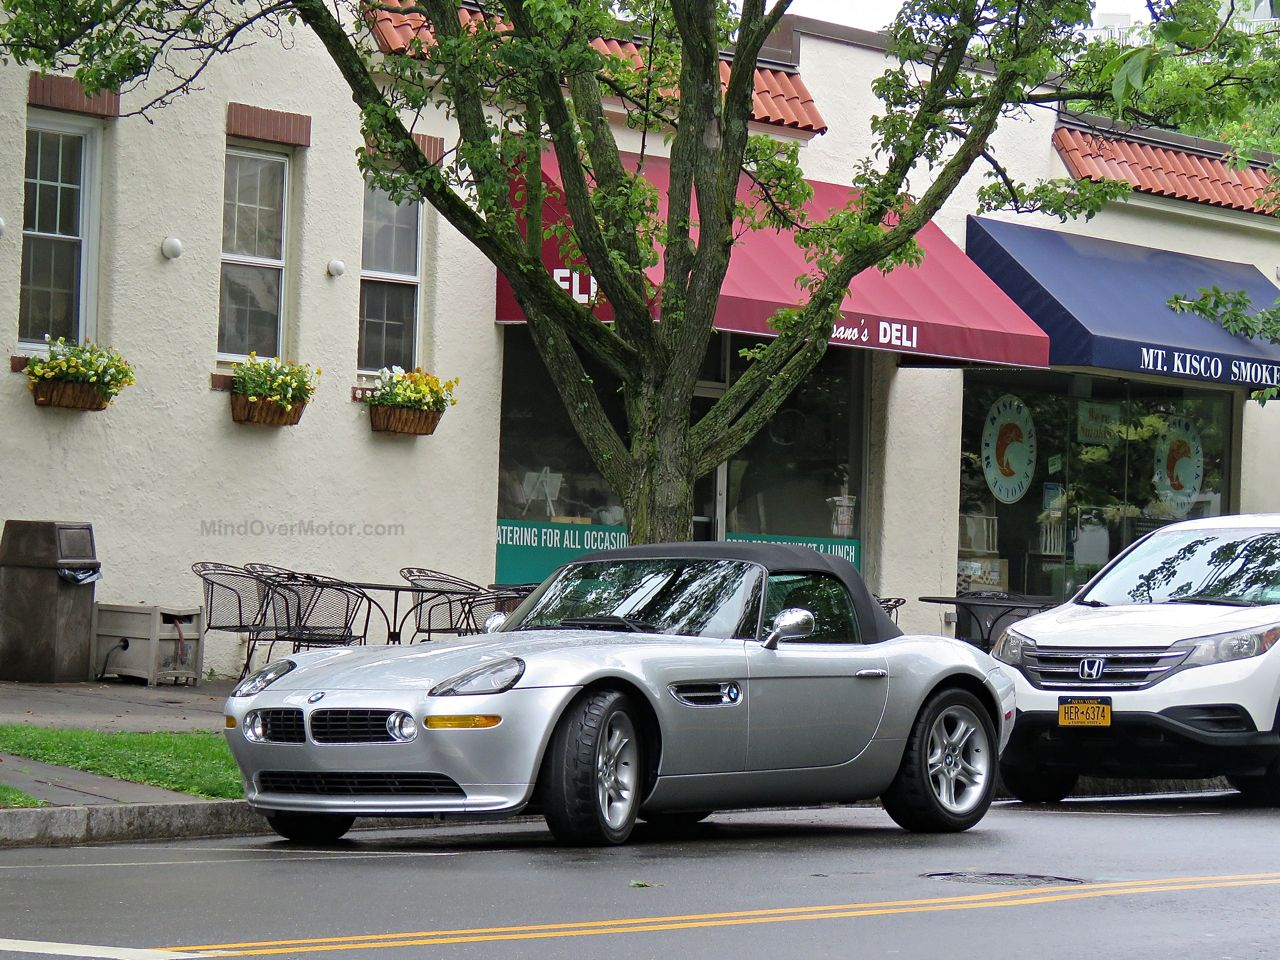 bmw z8 spotted in greenwich ct mind over motor